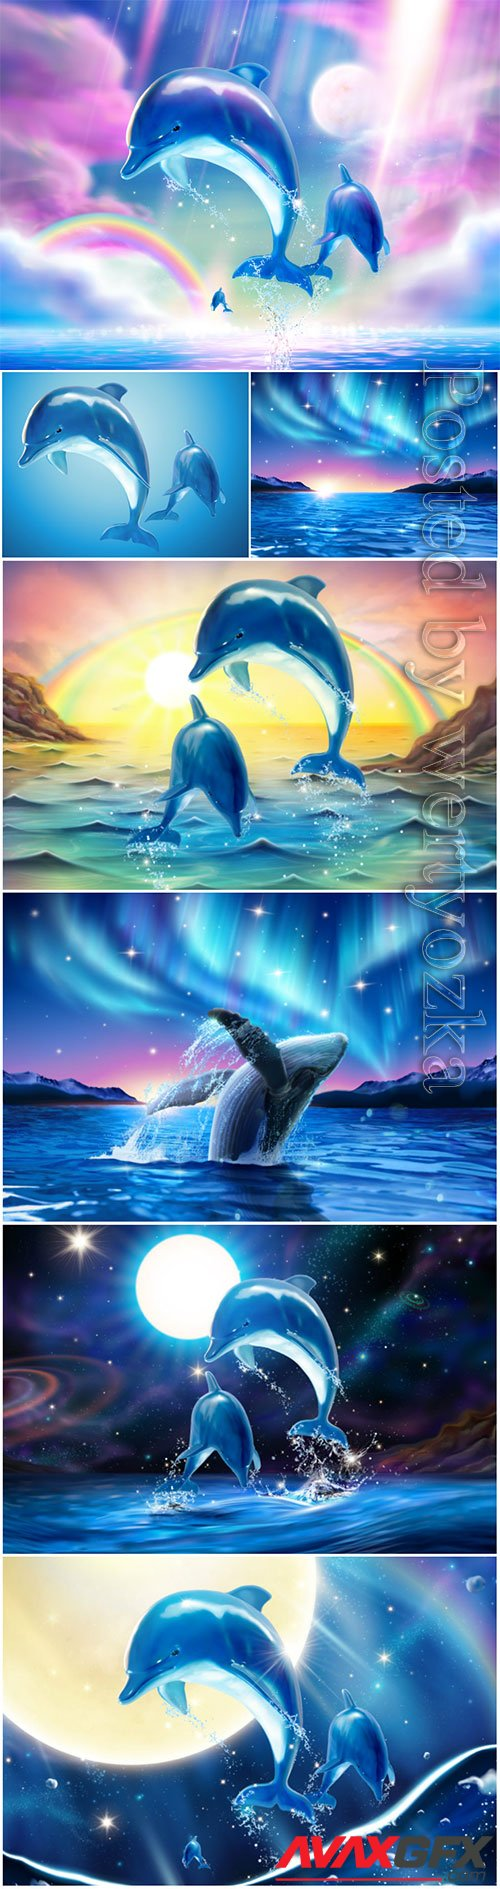 Dolphins in vector, marine landscape